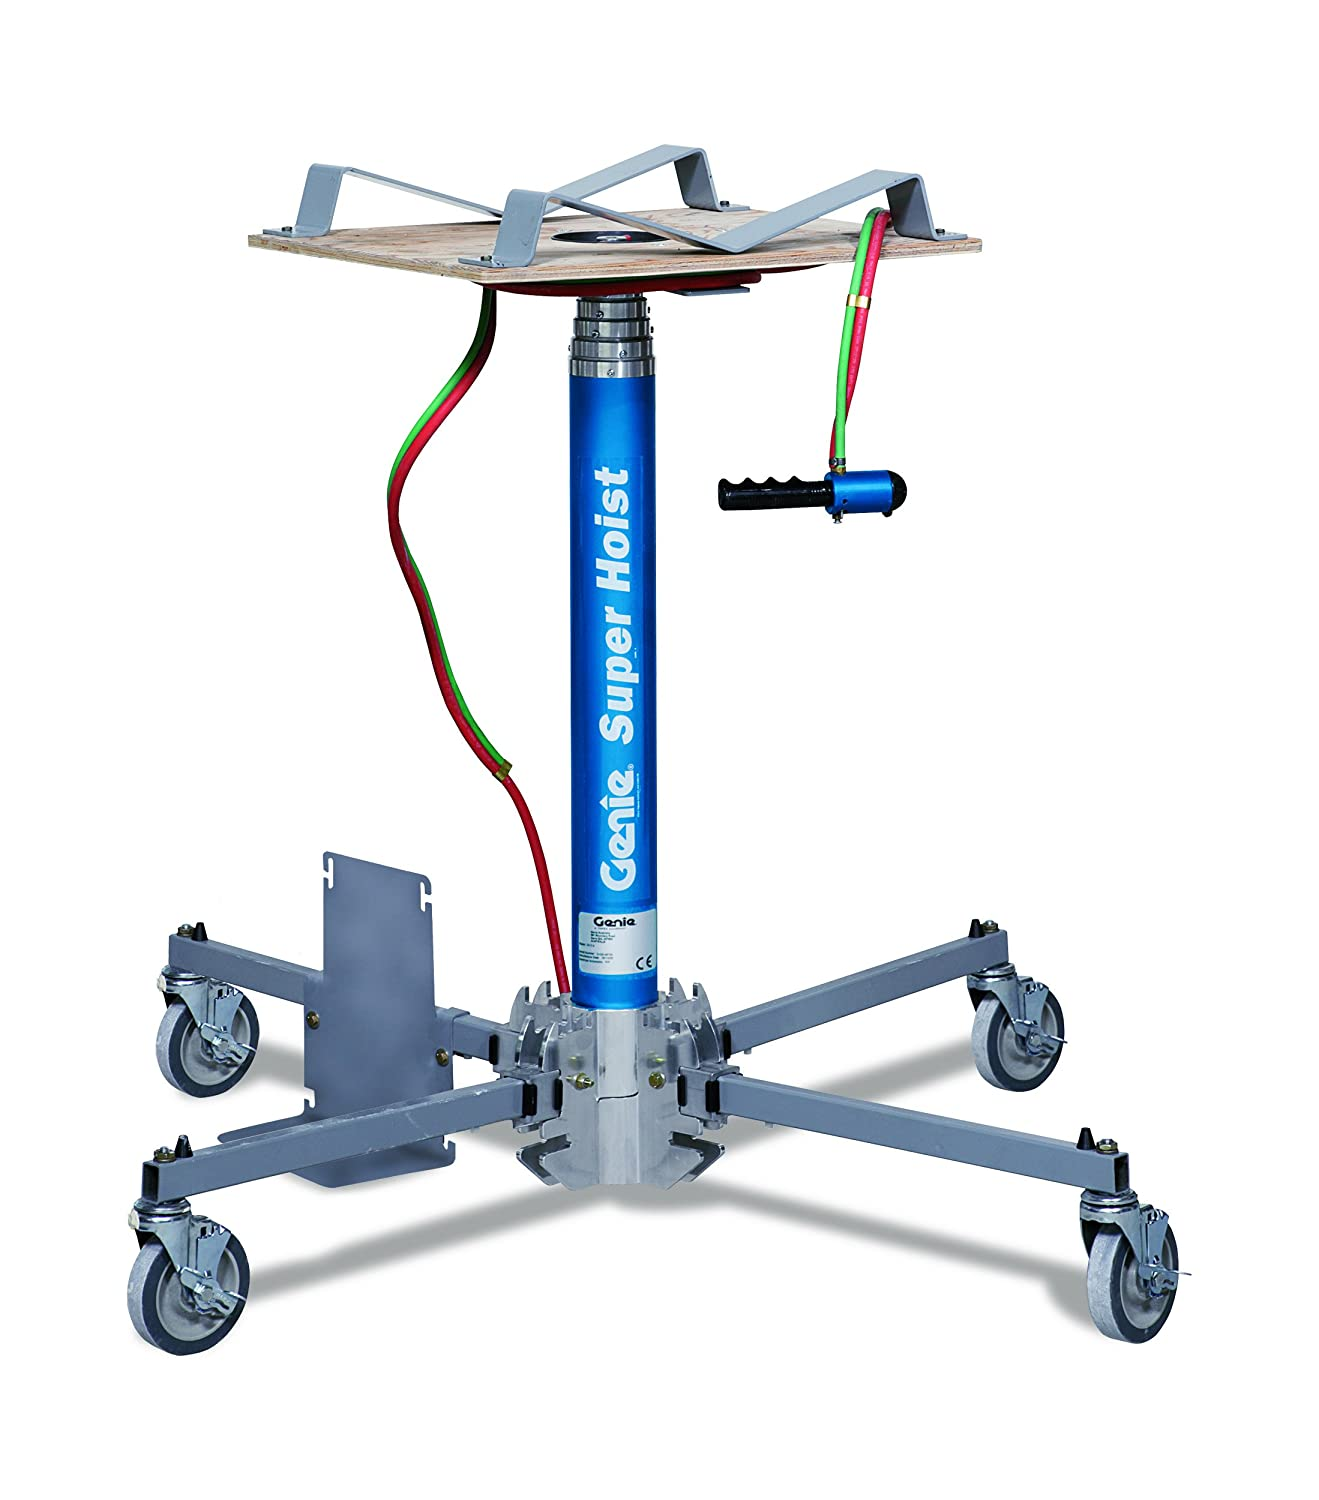 CO2 Tank Sold Separately Lift Height 12 GH-3.8 Portable Lift Genie Hoist 300 lbs Load Capacity